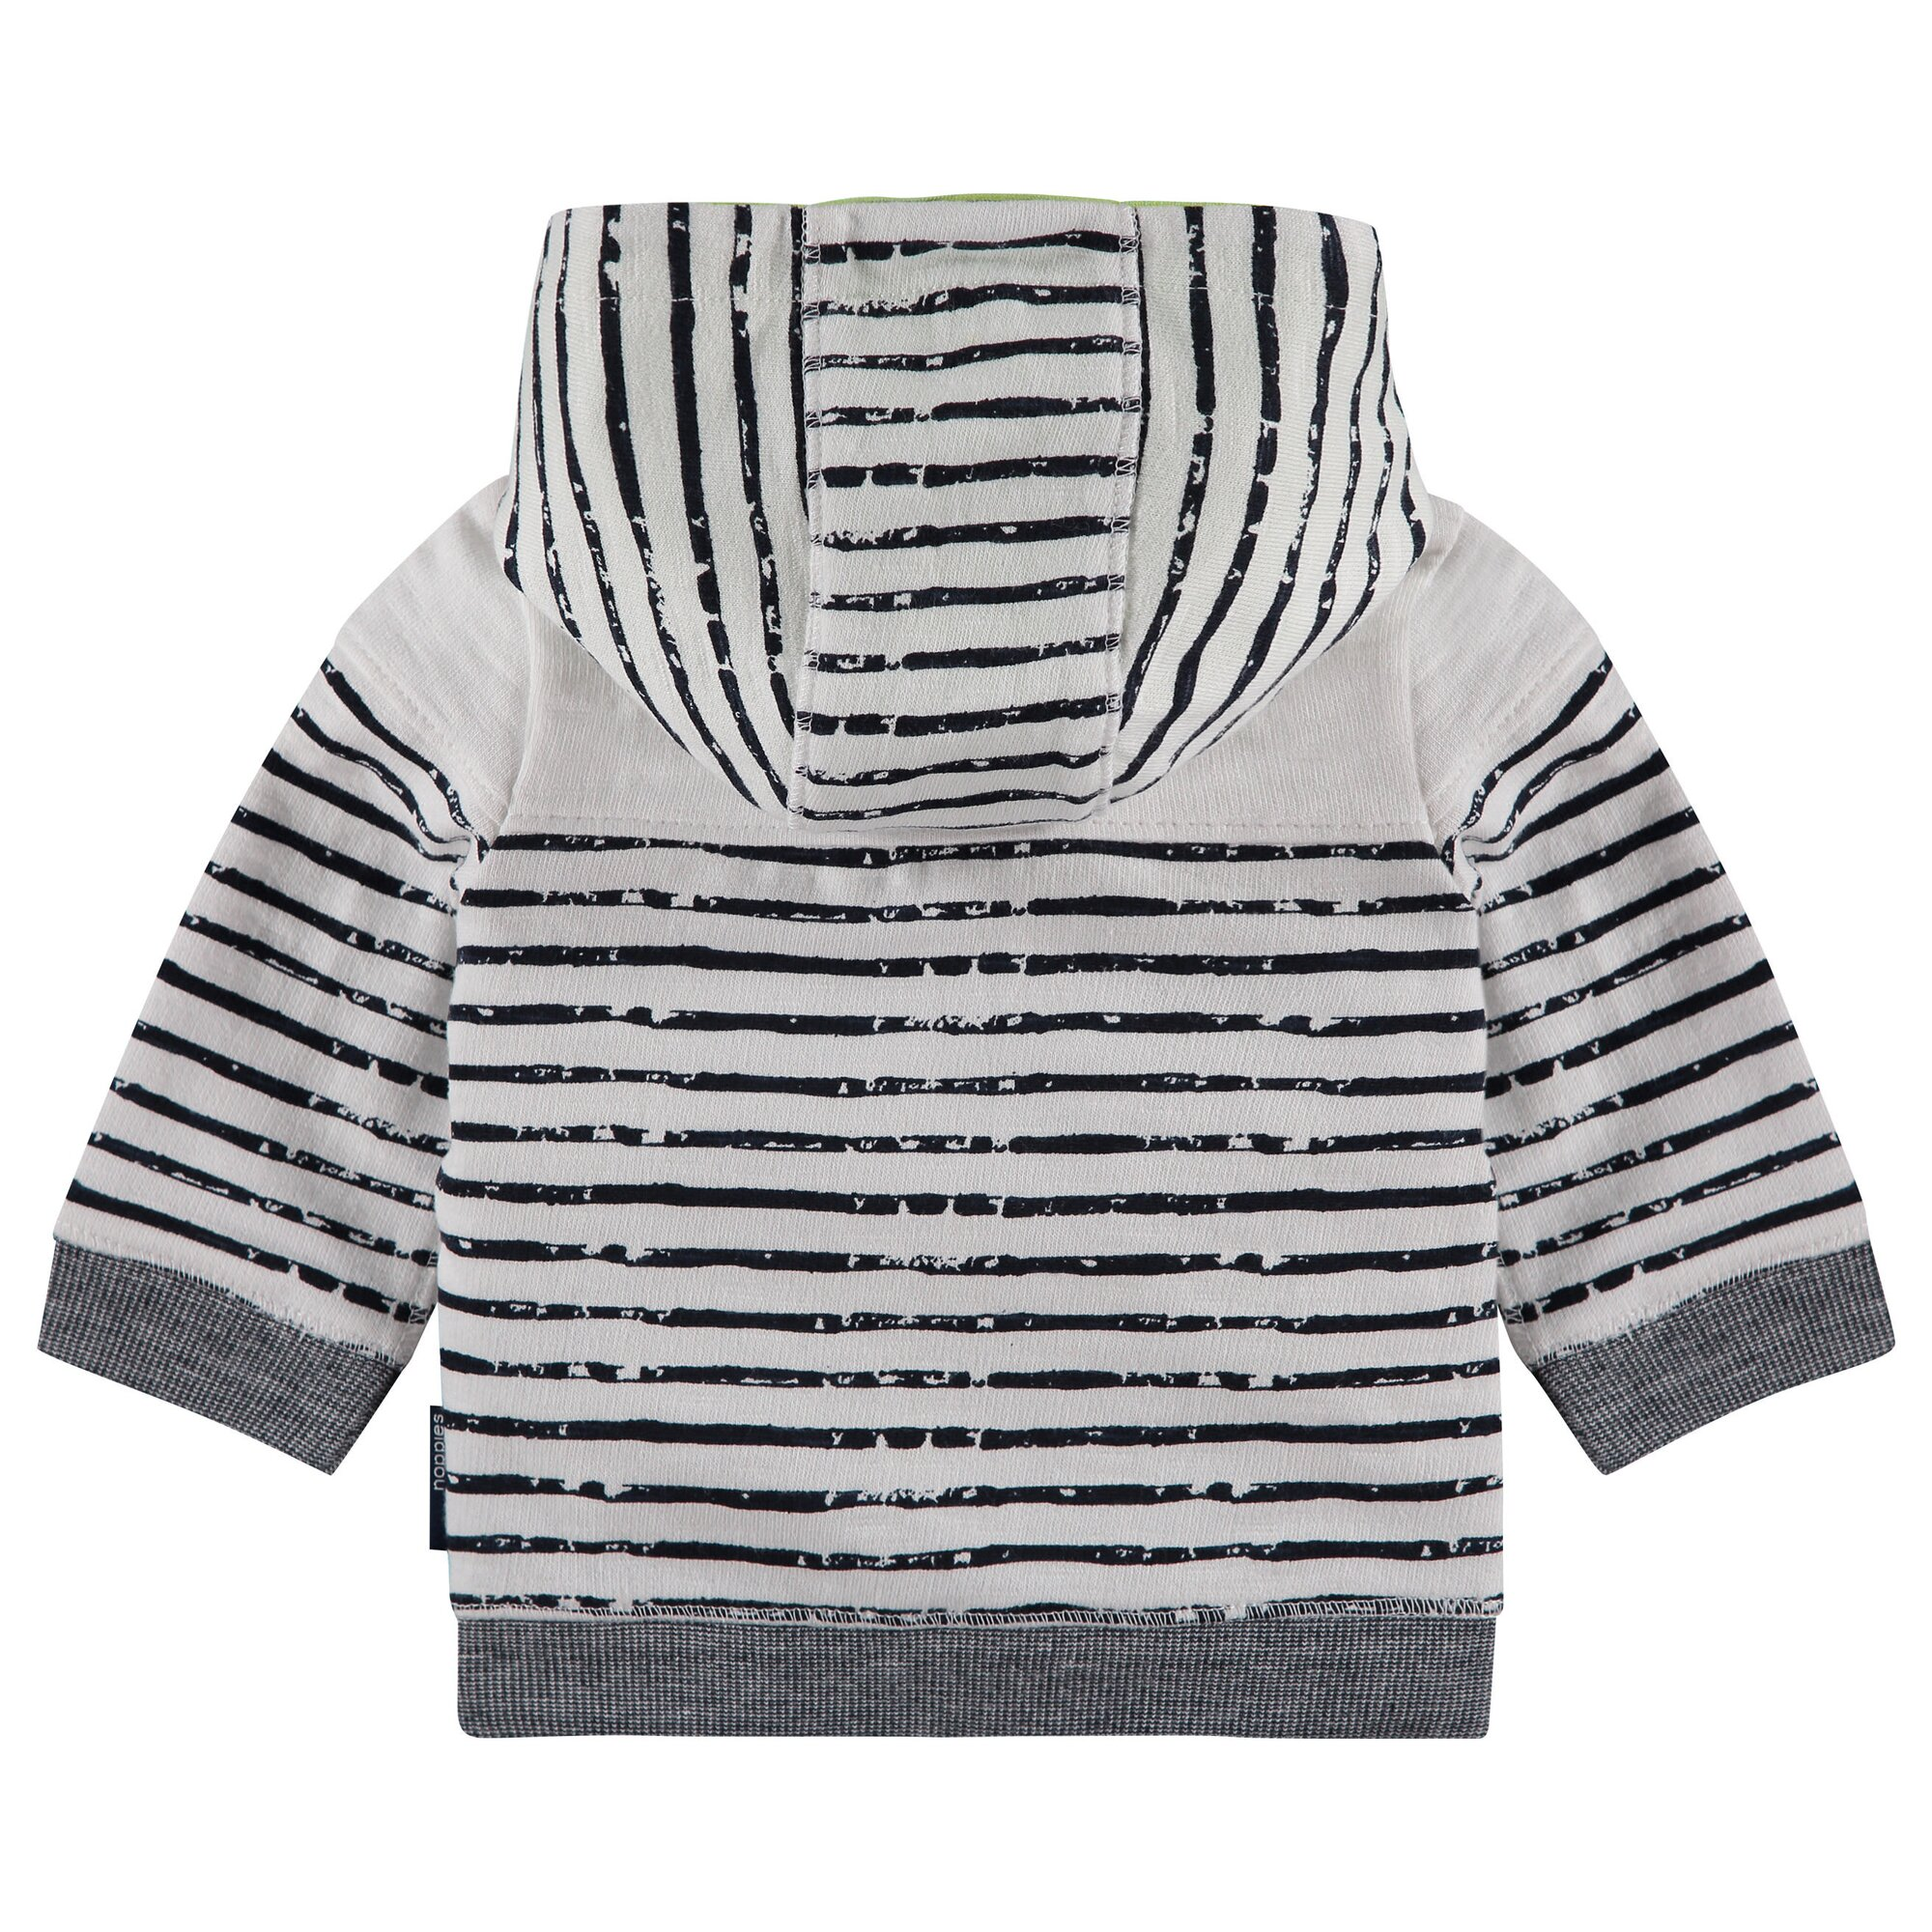 noppies-strickjacke-mexico, 14.99 EUR @ babywalz-de